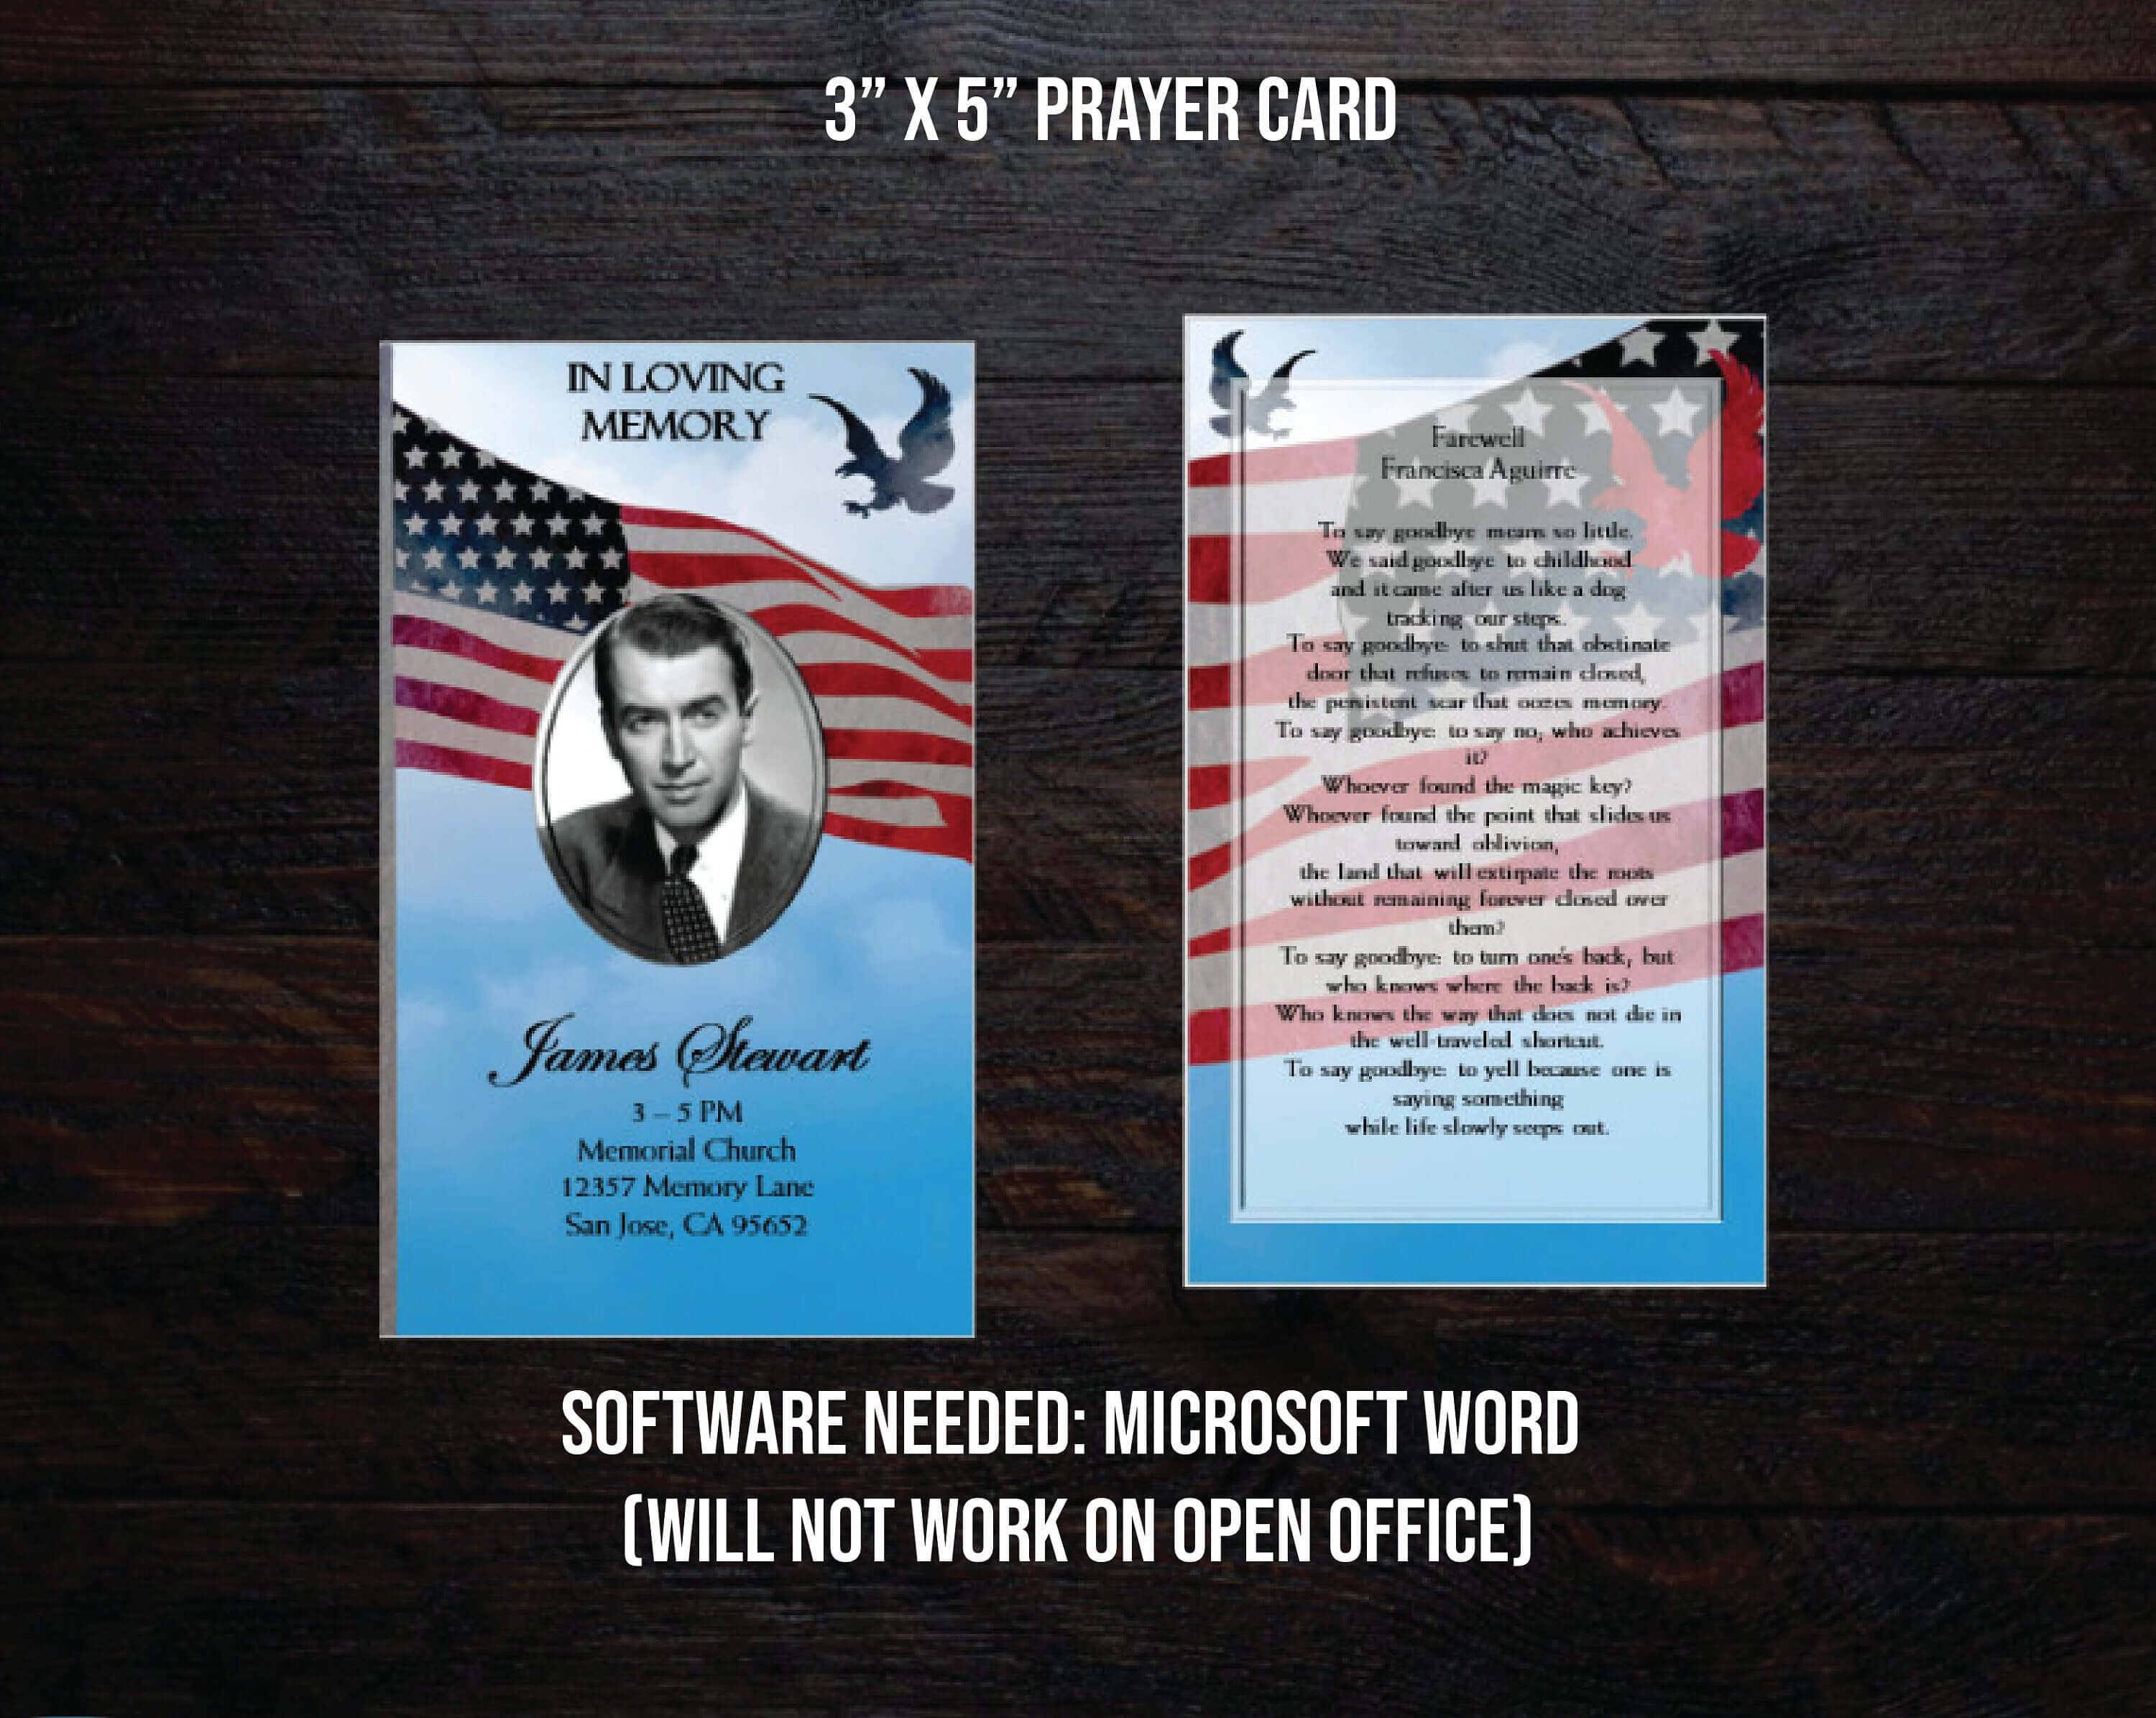 Microsoft Word Template Funeral Prayer Card | Memorial Prayer Card|  Editable Text | Us Flag | Military Men | Eagle in Prayer Card Template For Word